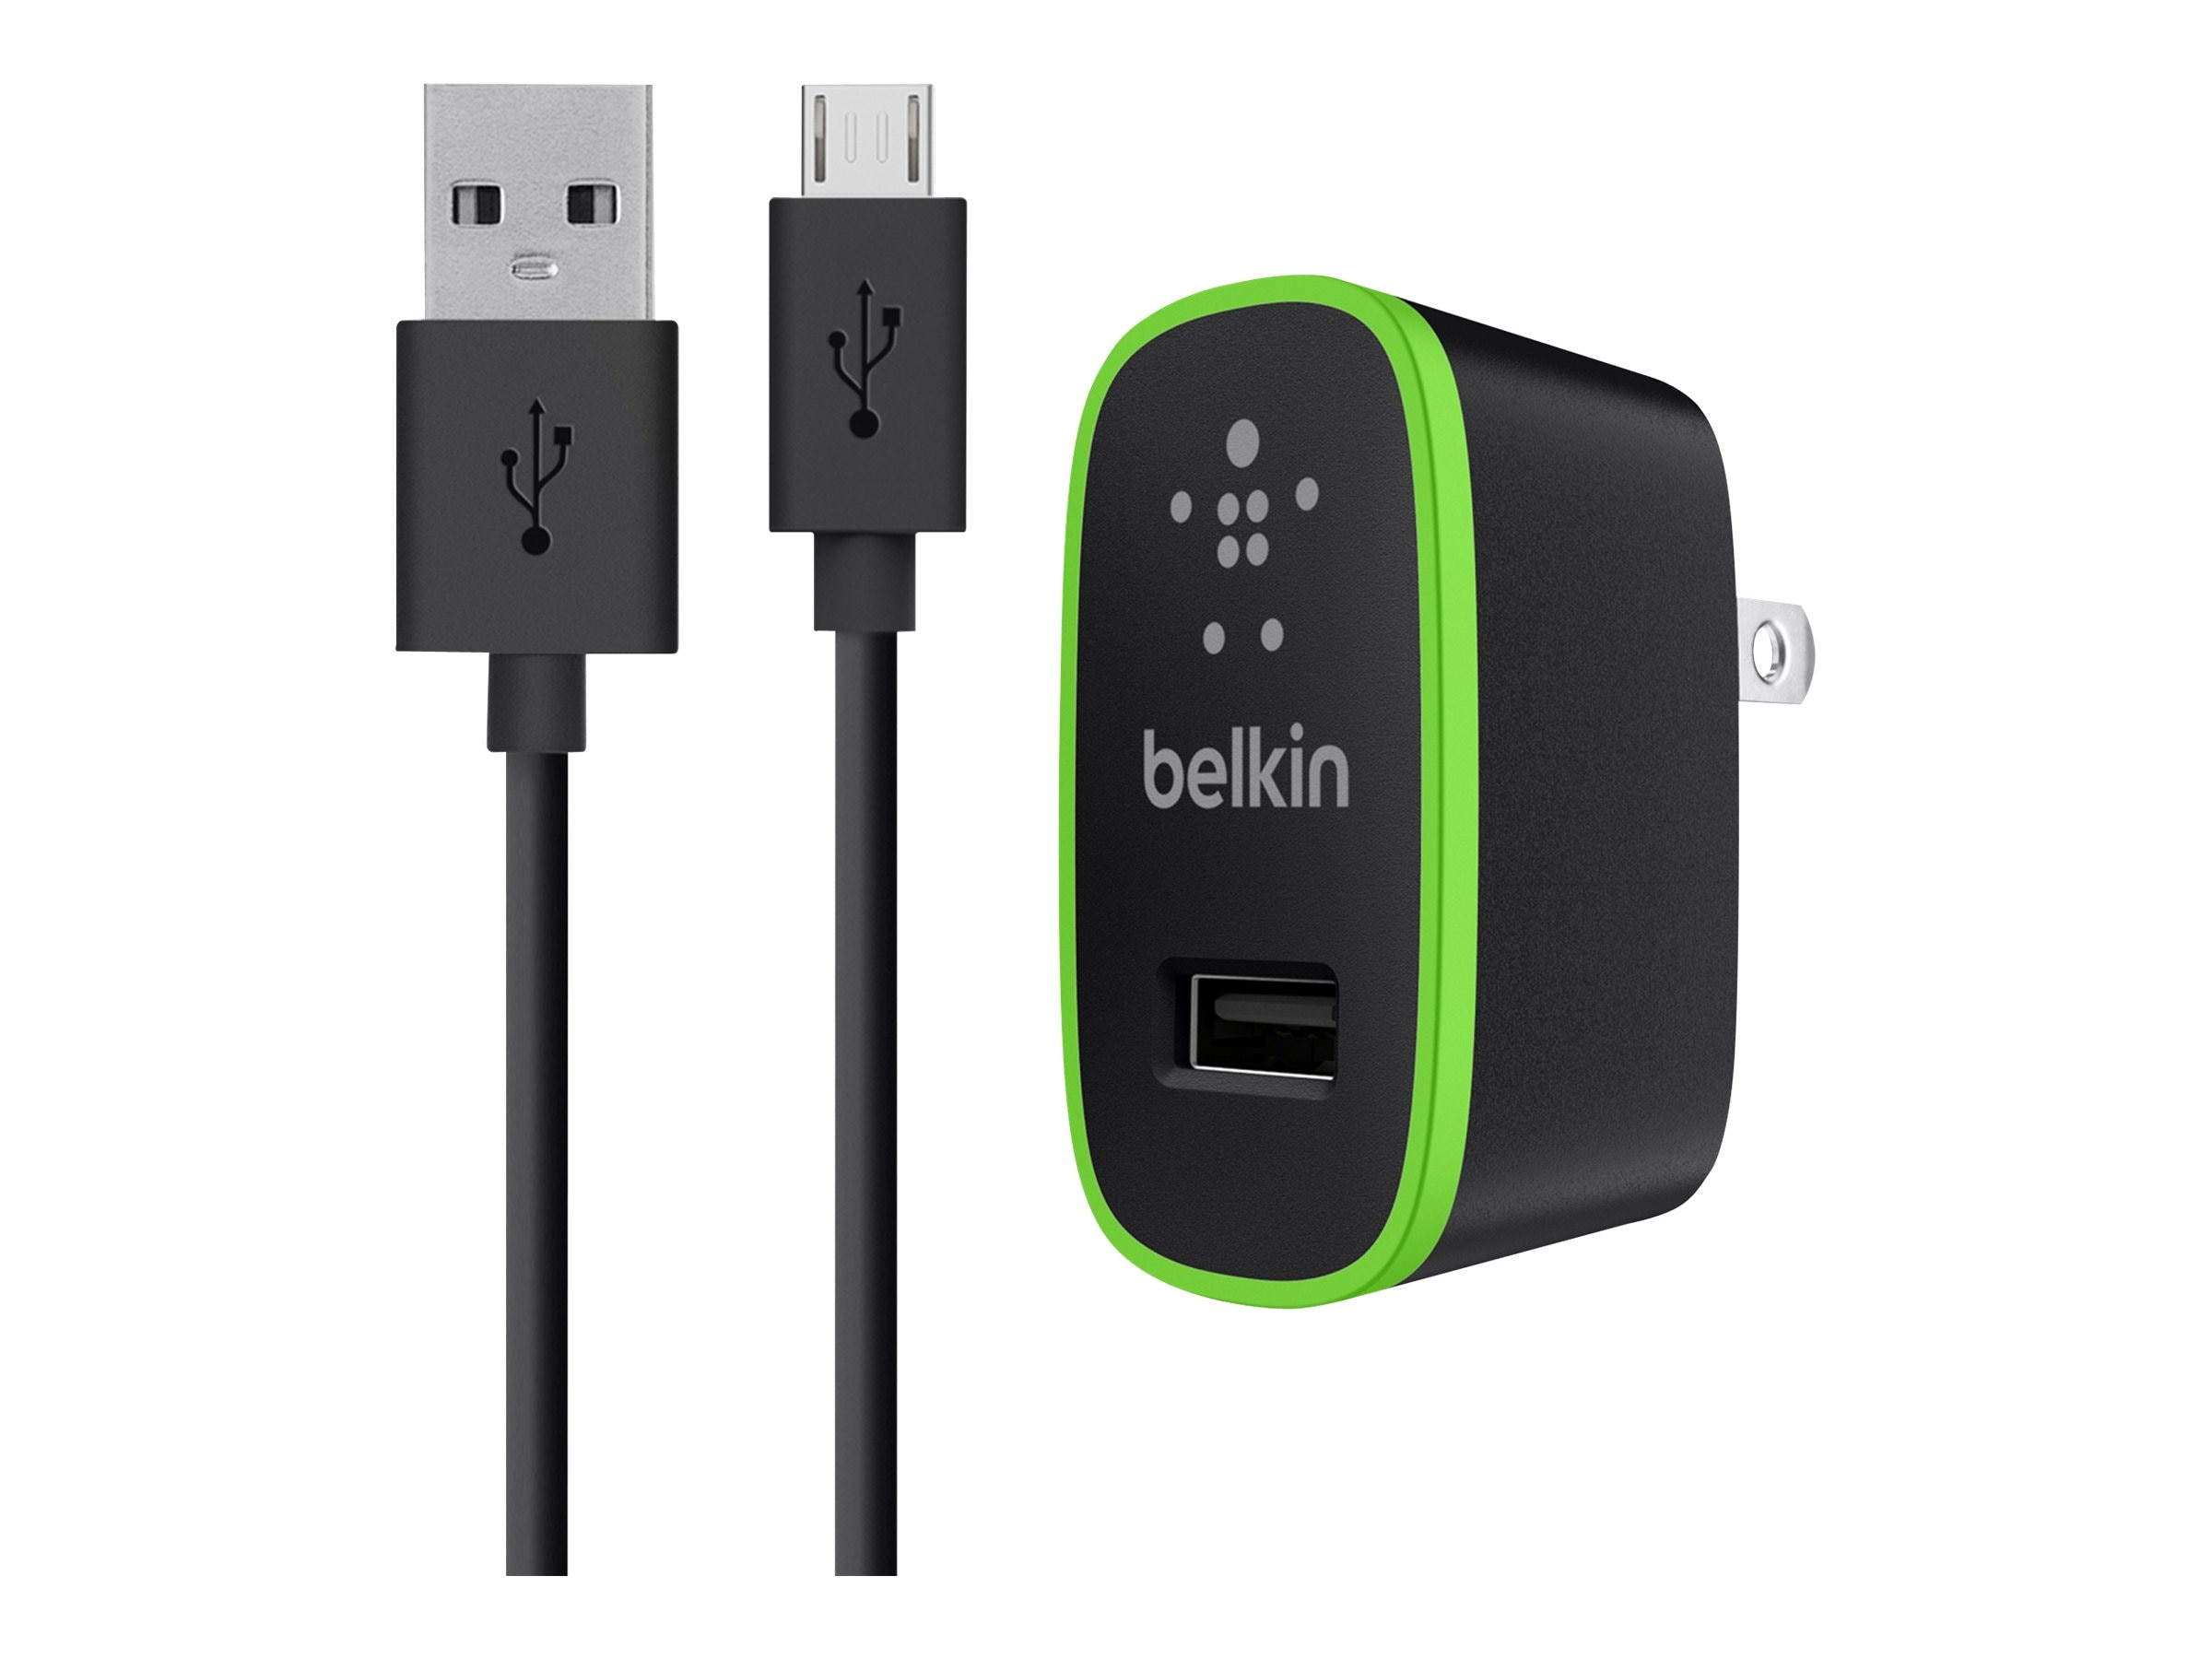 Belkin Universal Home Charger, Micro-USB Charge Sync Cable, 10W 2.1A, Black